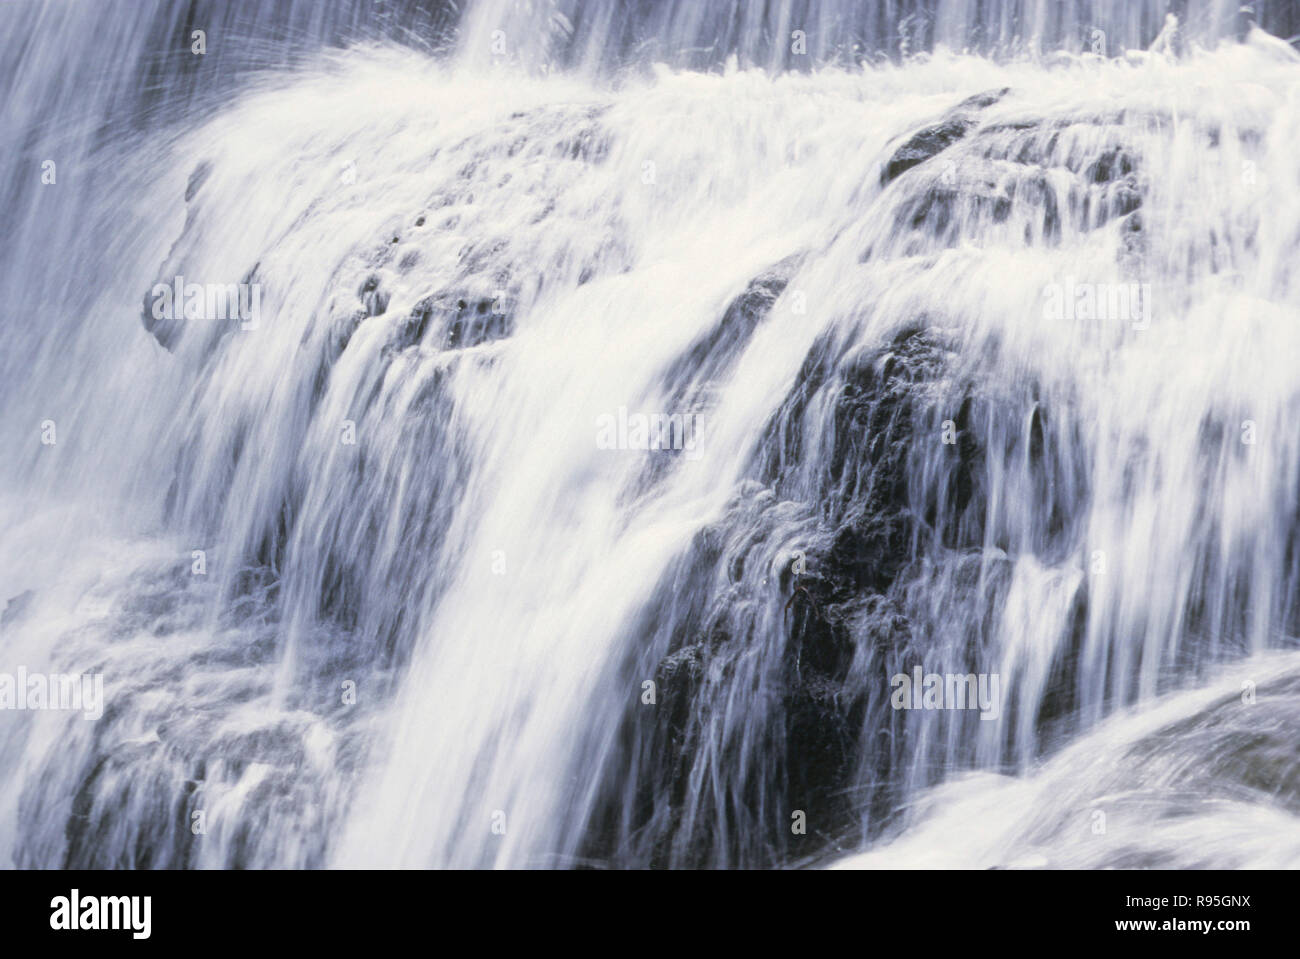 Chinchoti waterfall at Vasai, Maharashtra, India - Stock Image